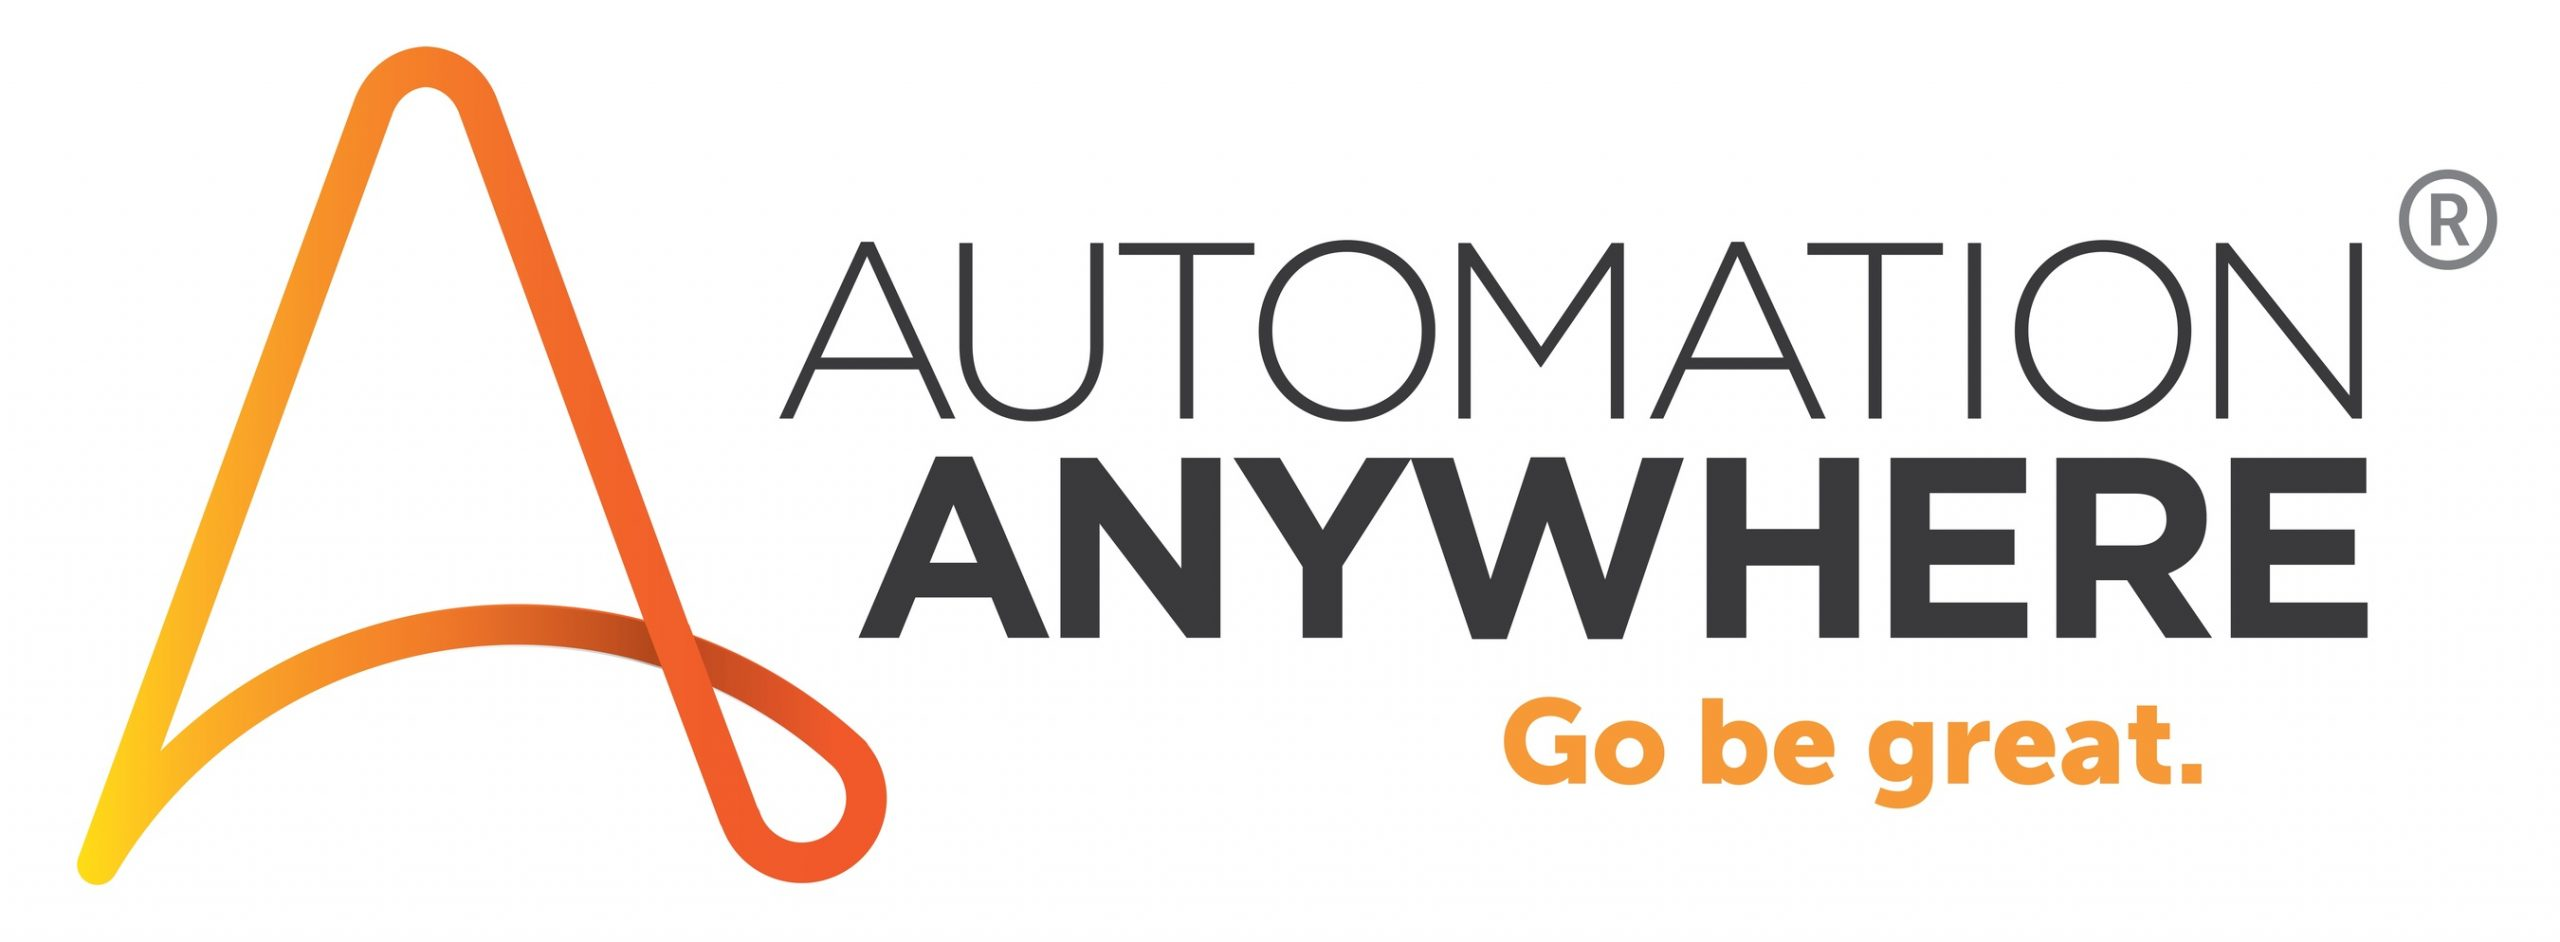 Automation Anywhere Recognized as a 2020 Gartner Peer Insights Customers' Choice for Robotic Process Automation